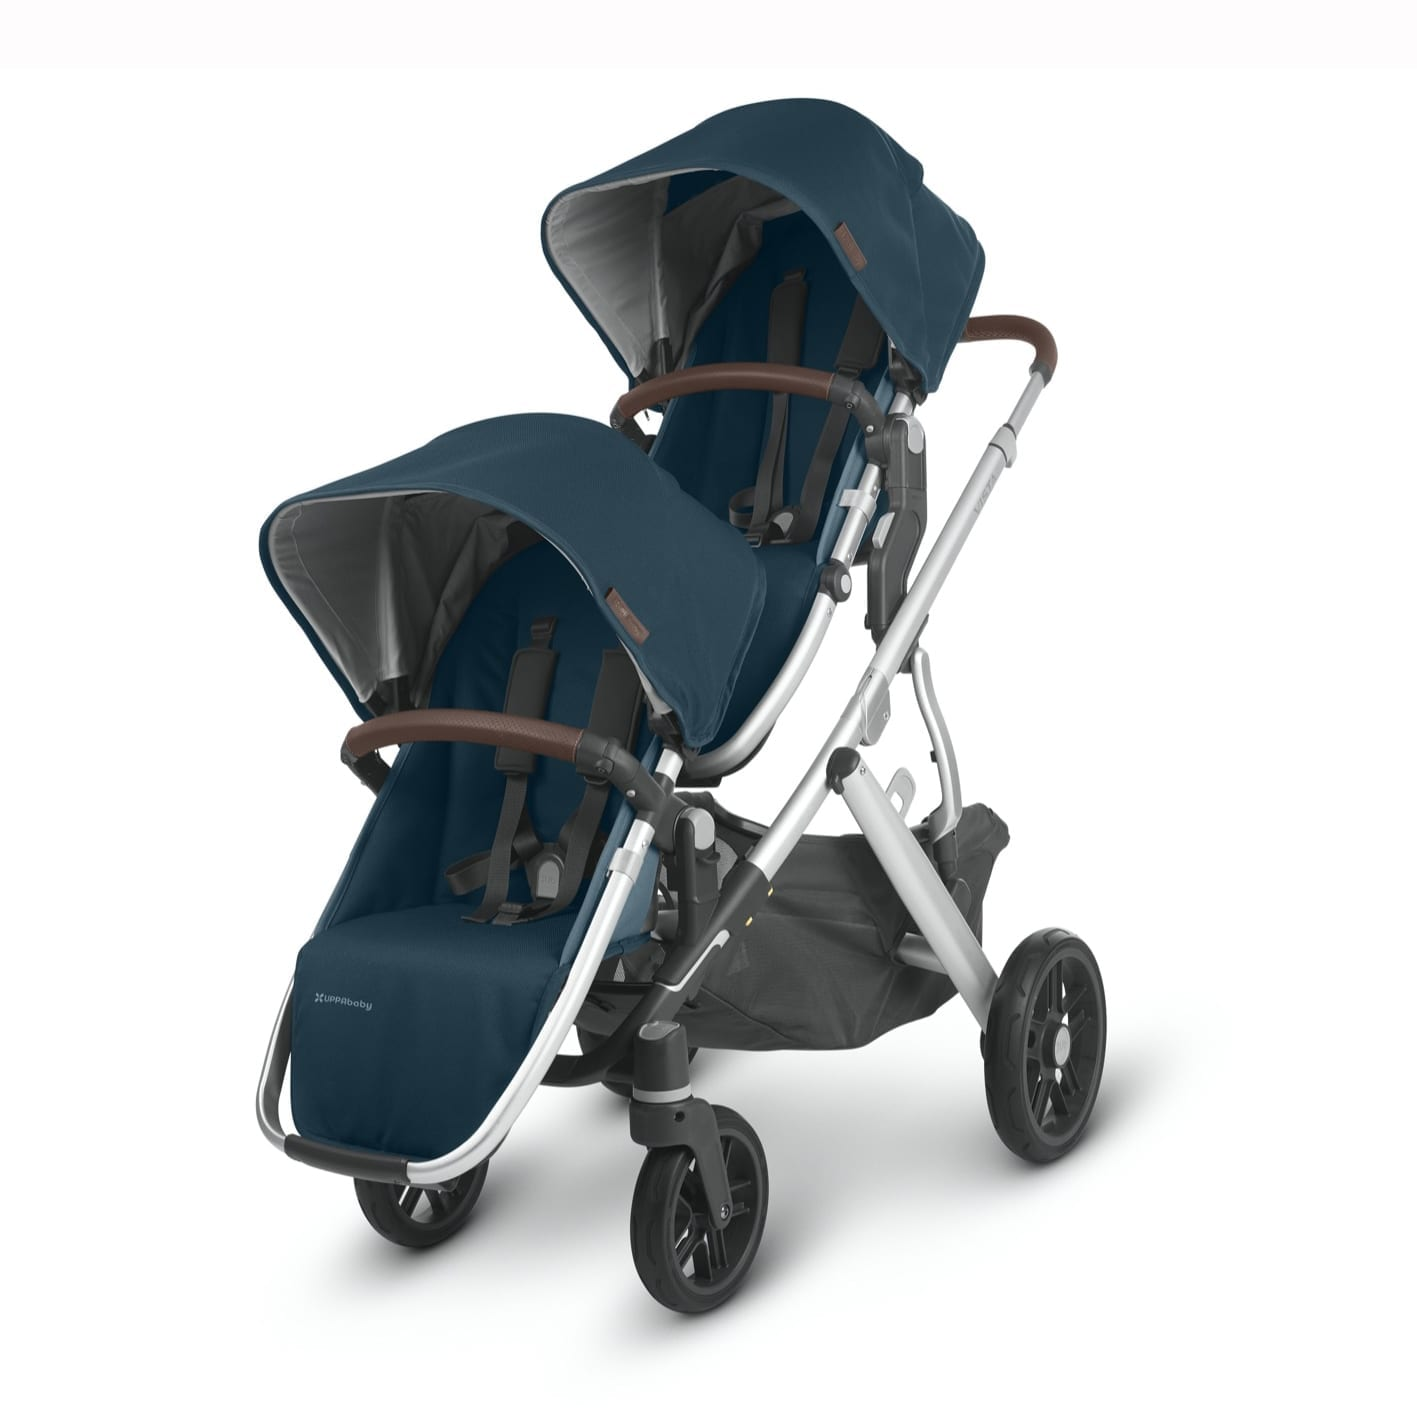 UPPABaby VISTA 2 Rumble Seat – FINN product image